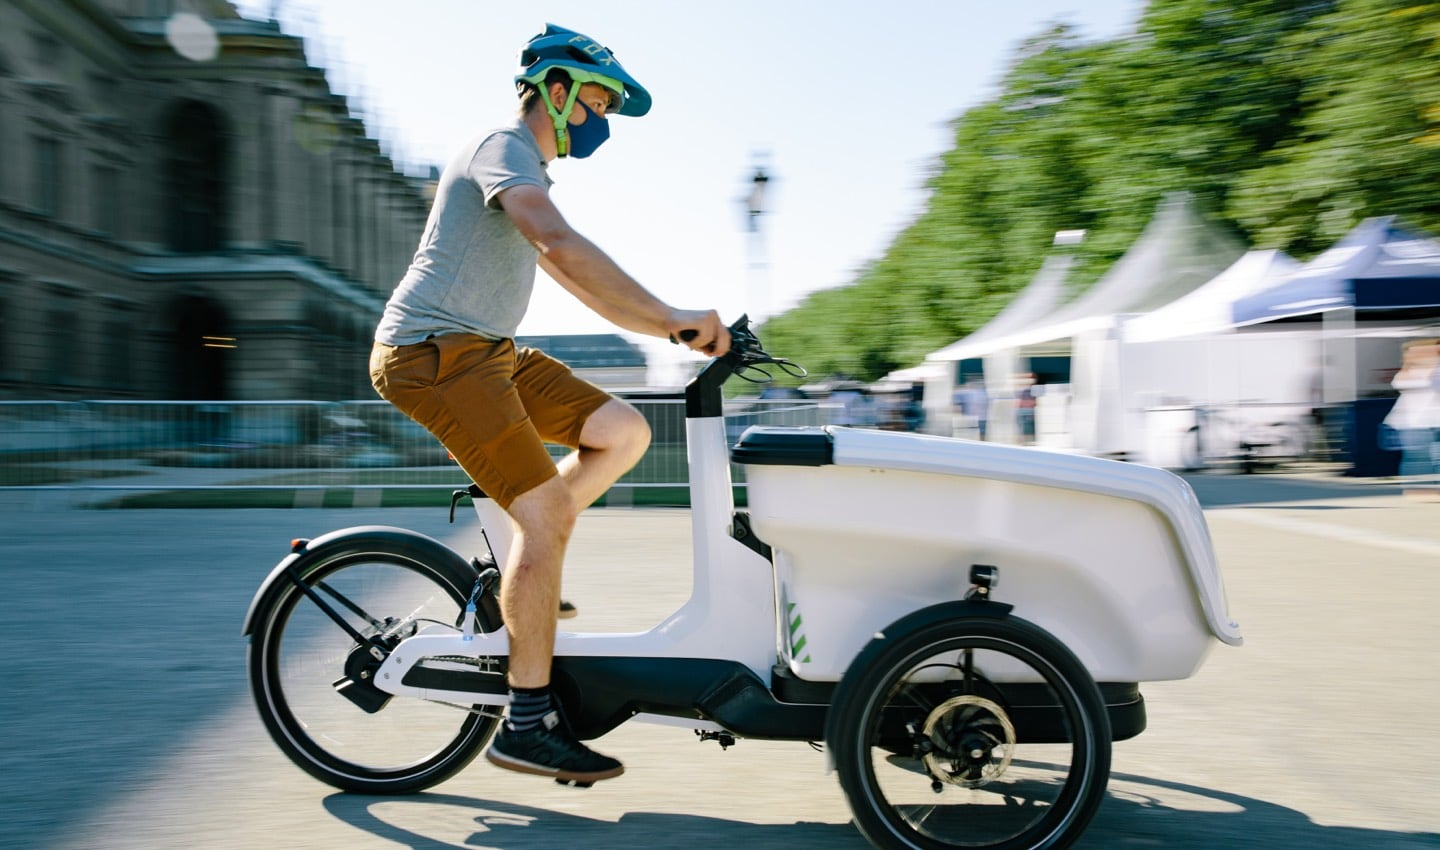 Ebikes got a lot of attention at this year's IAA. With space to test the machines, visitors were able to get hands on.